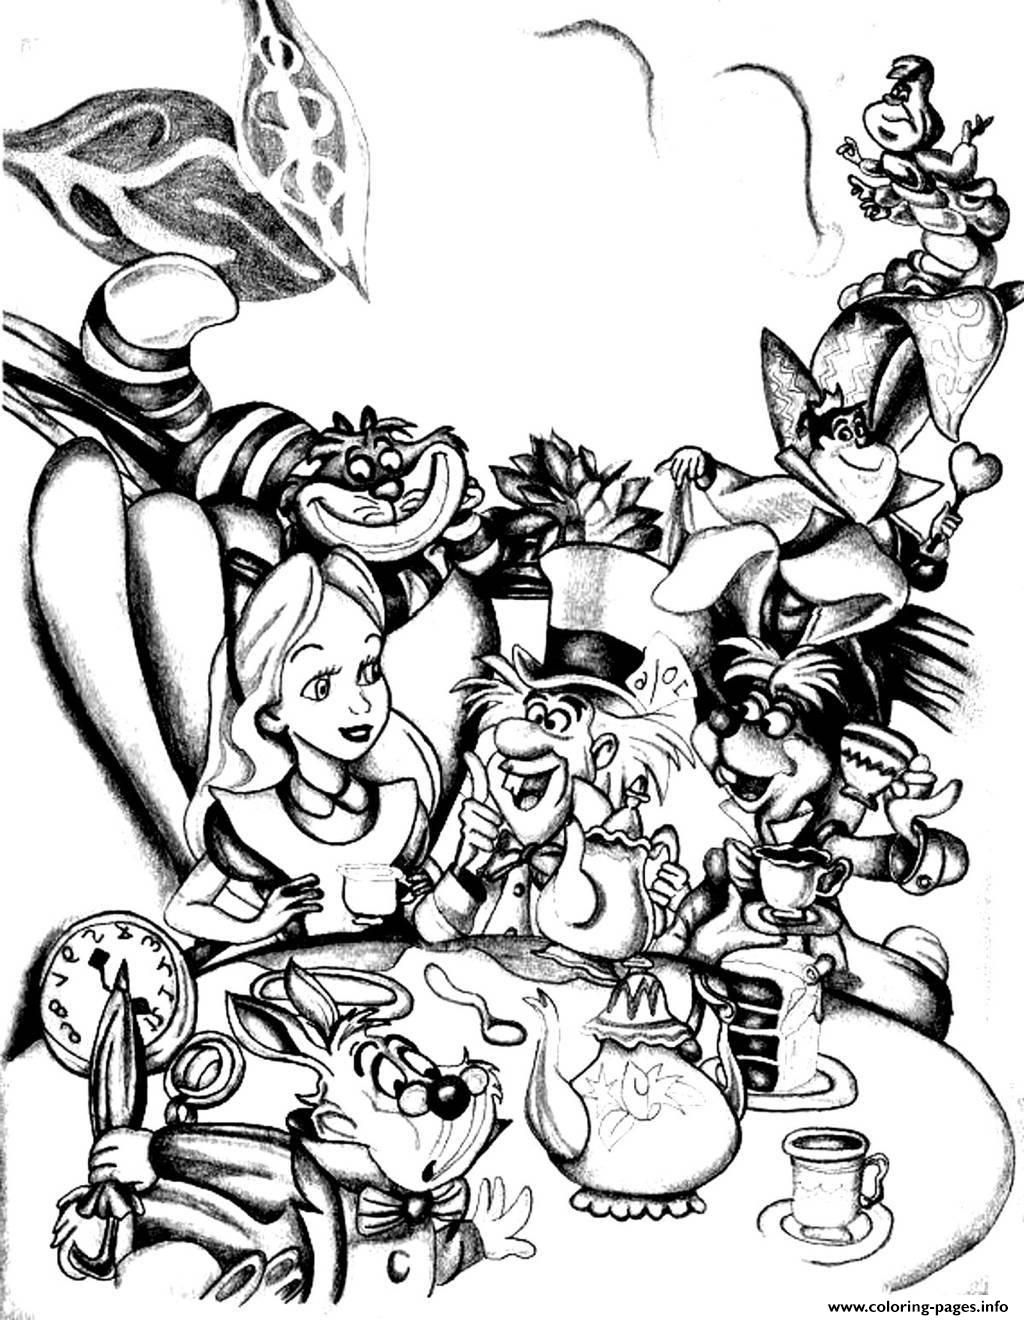 Disney coloring pages adults - Adult Disney Drawing Alice In Wonderland Coloring Pages Printable